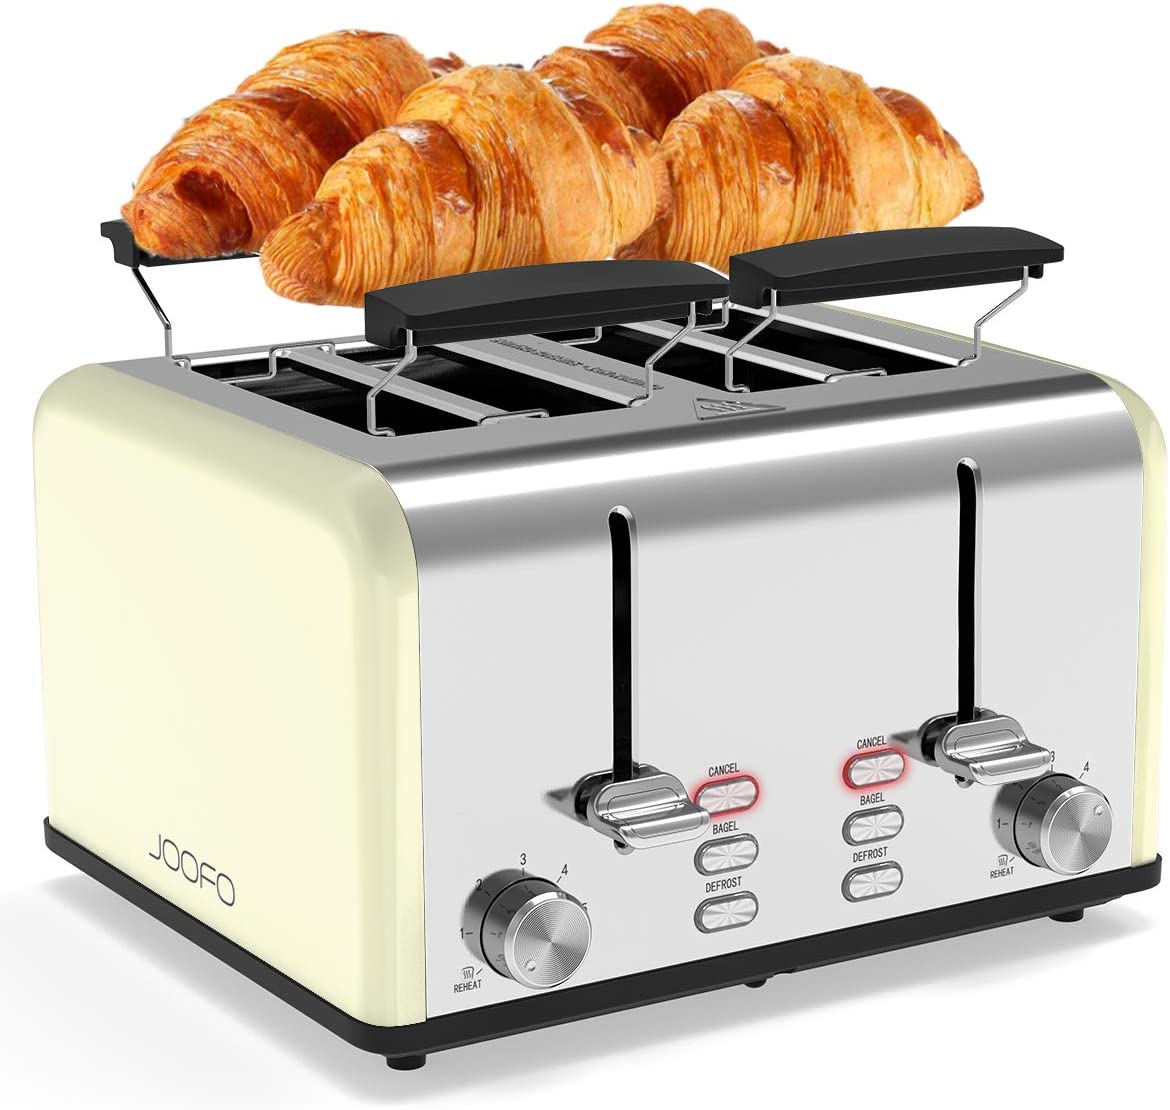 JOOFO Toaster 4 Slice, 6 Shade Settings Extra-Wide Slot Stainless Steel Toaster with Bagel, Cancel,Defrost,Reheat Function with Dual Control Panels, Removable Crumb Tray for Various Bread Types, Beige